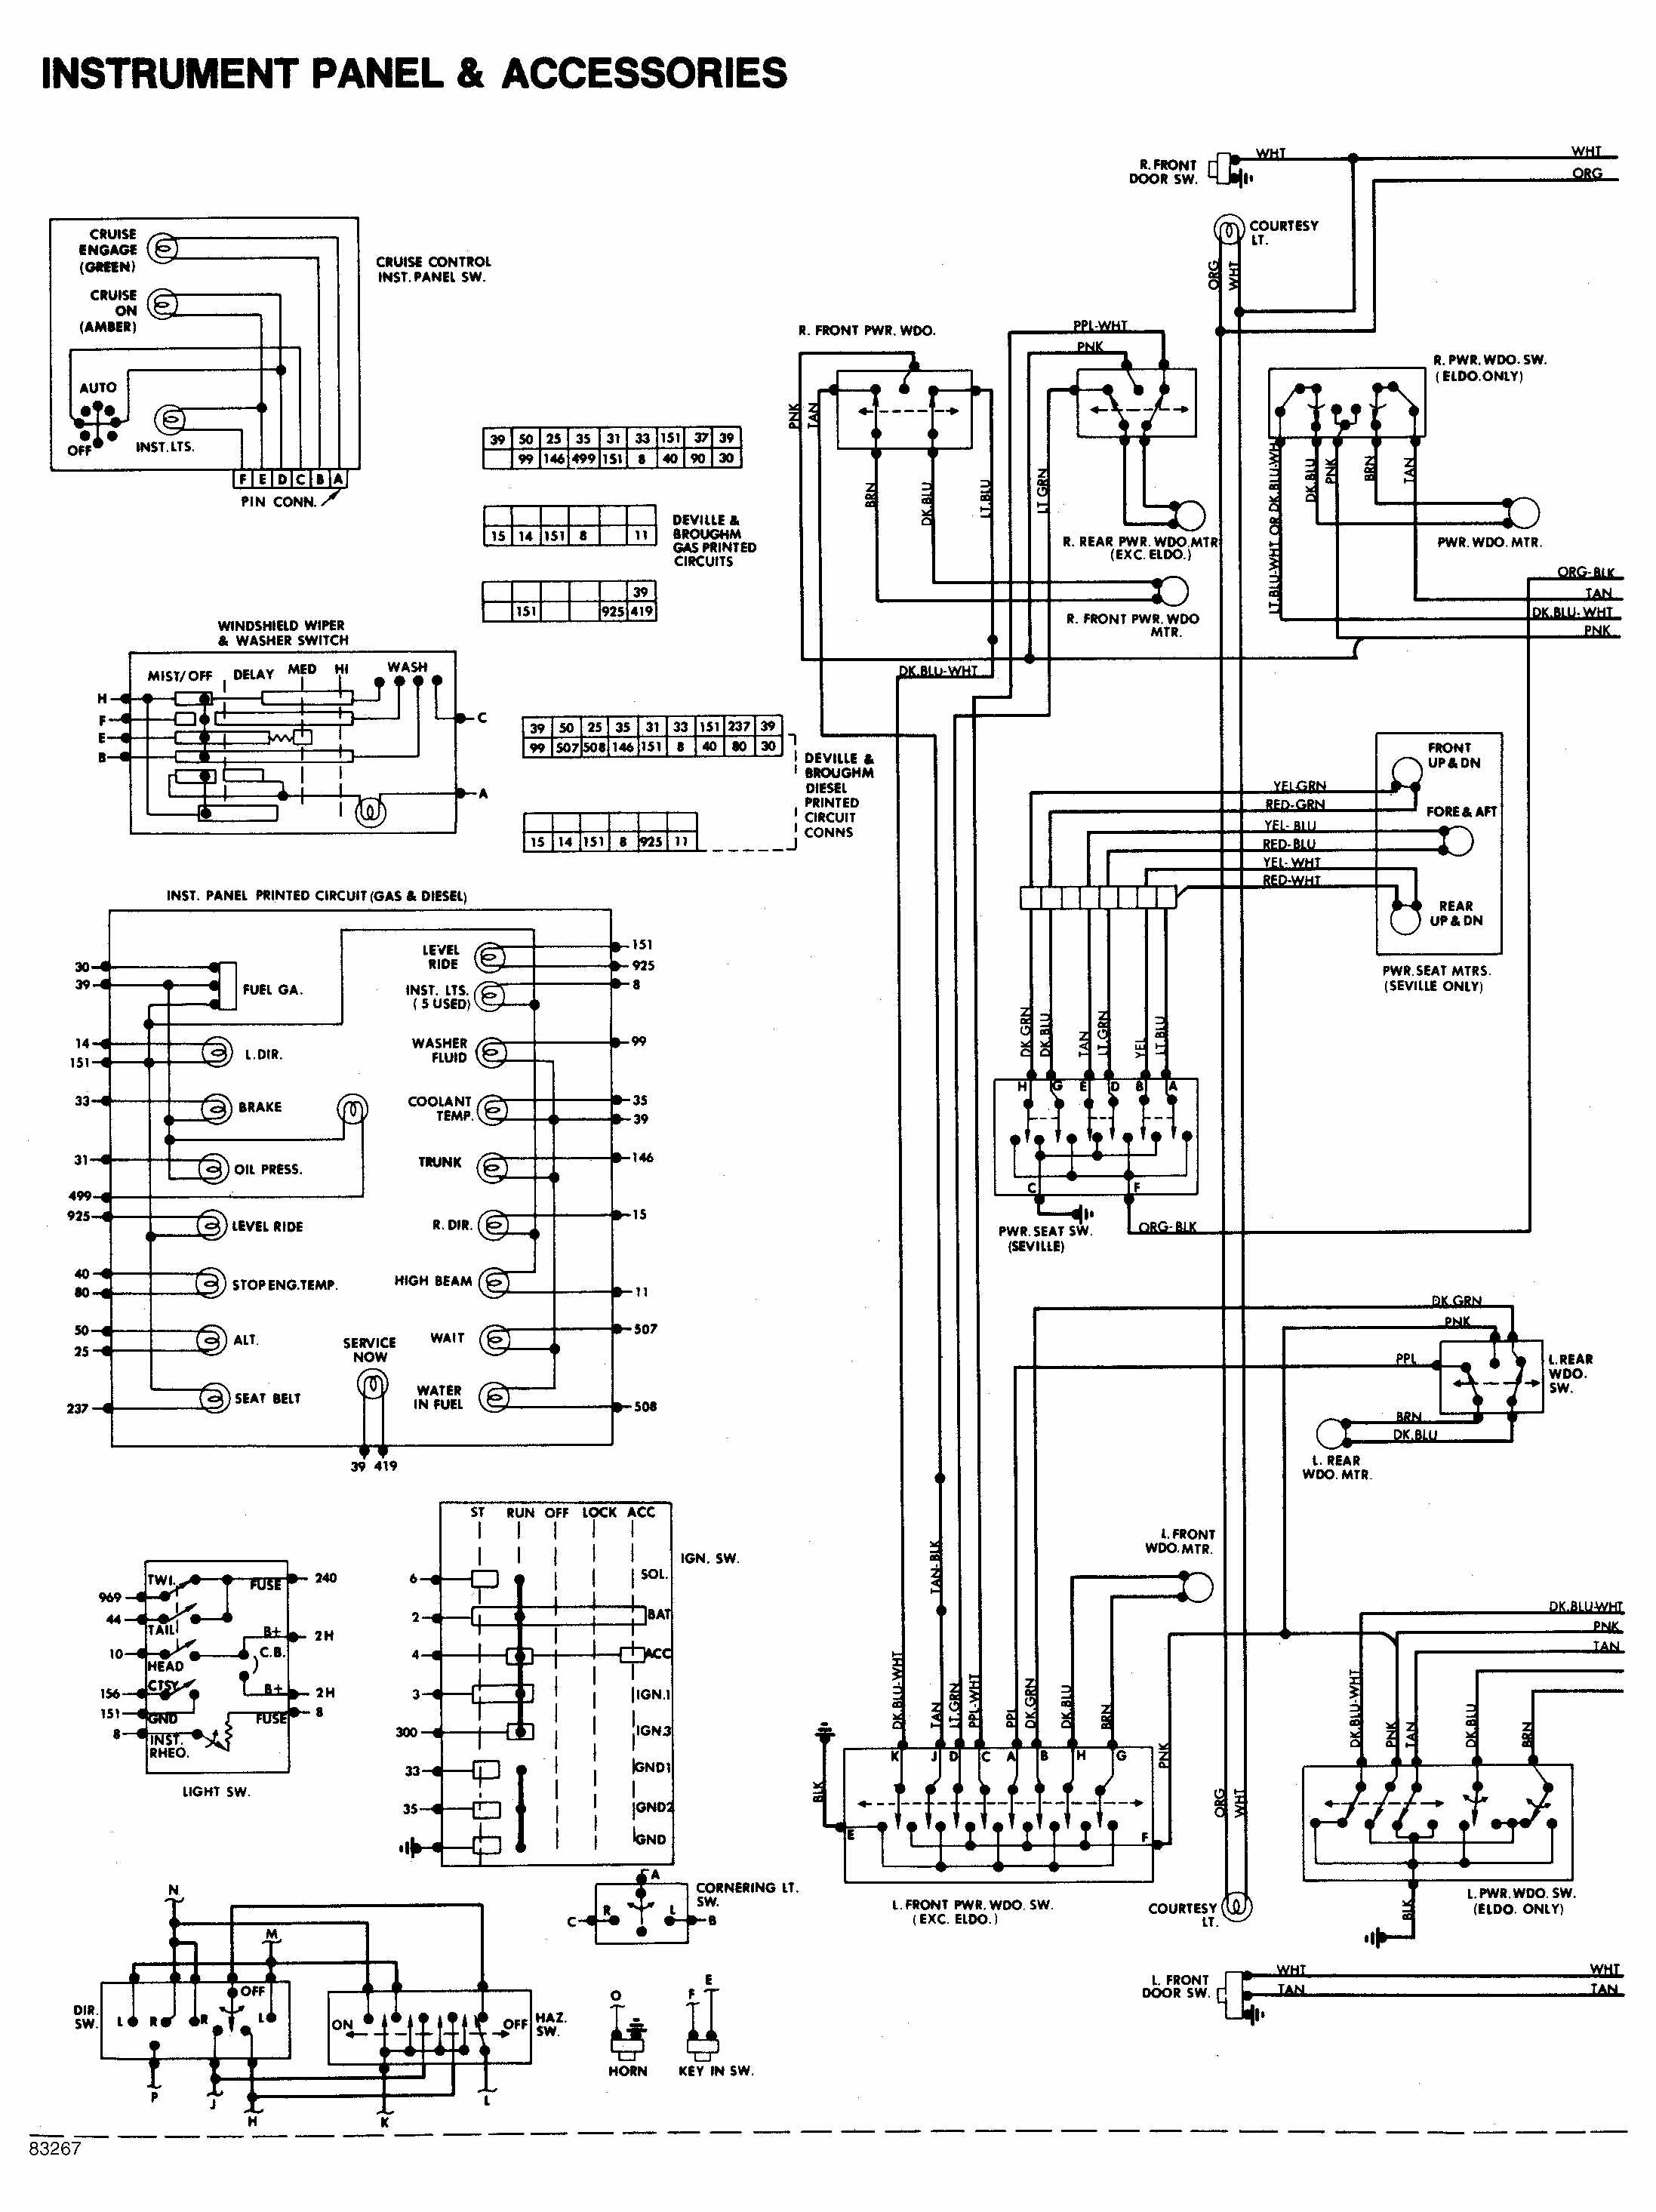 1969 corvette headlight wiring diagram wiring diagram schemes saab headlight  wiring diagram chevy diagrams chevy chassis